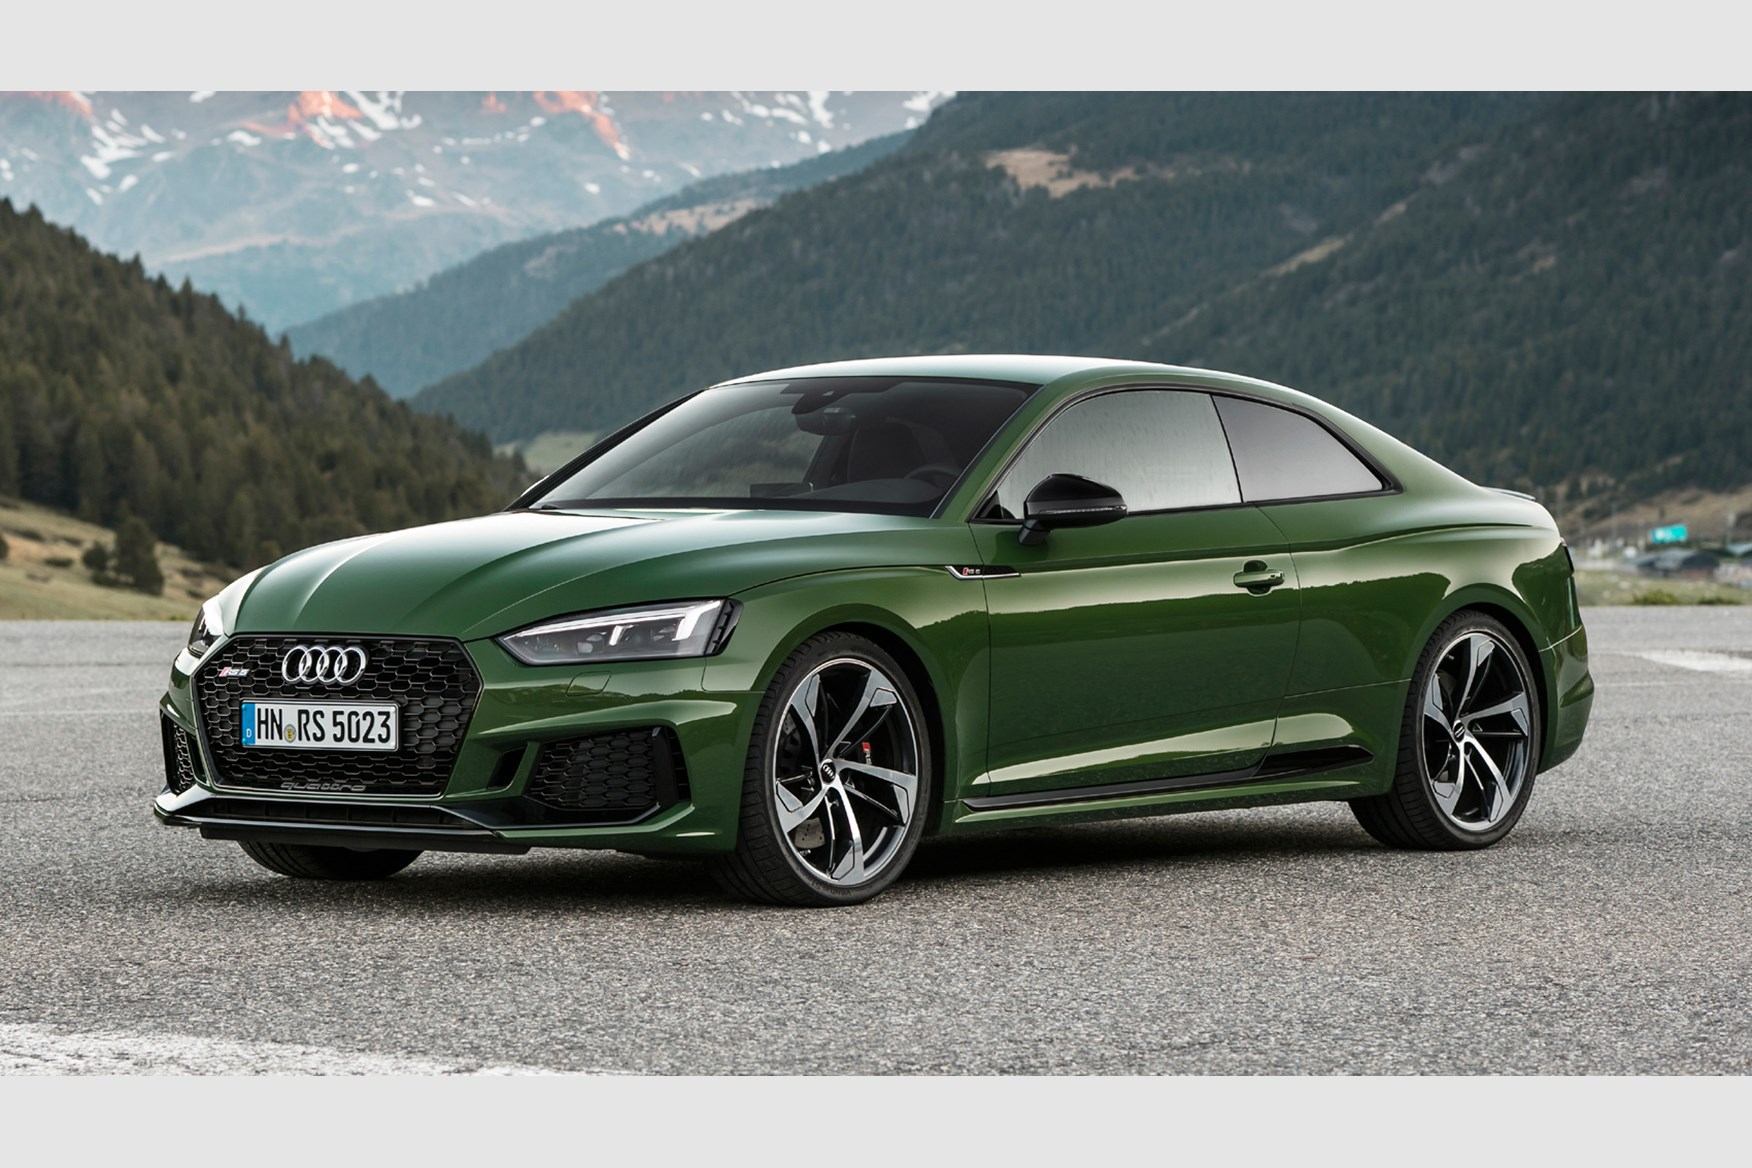 Audi Rs5 Coupe 2017 Review Manual Guide